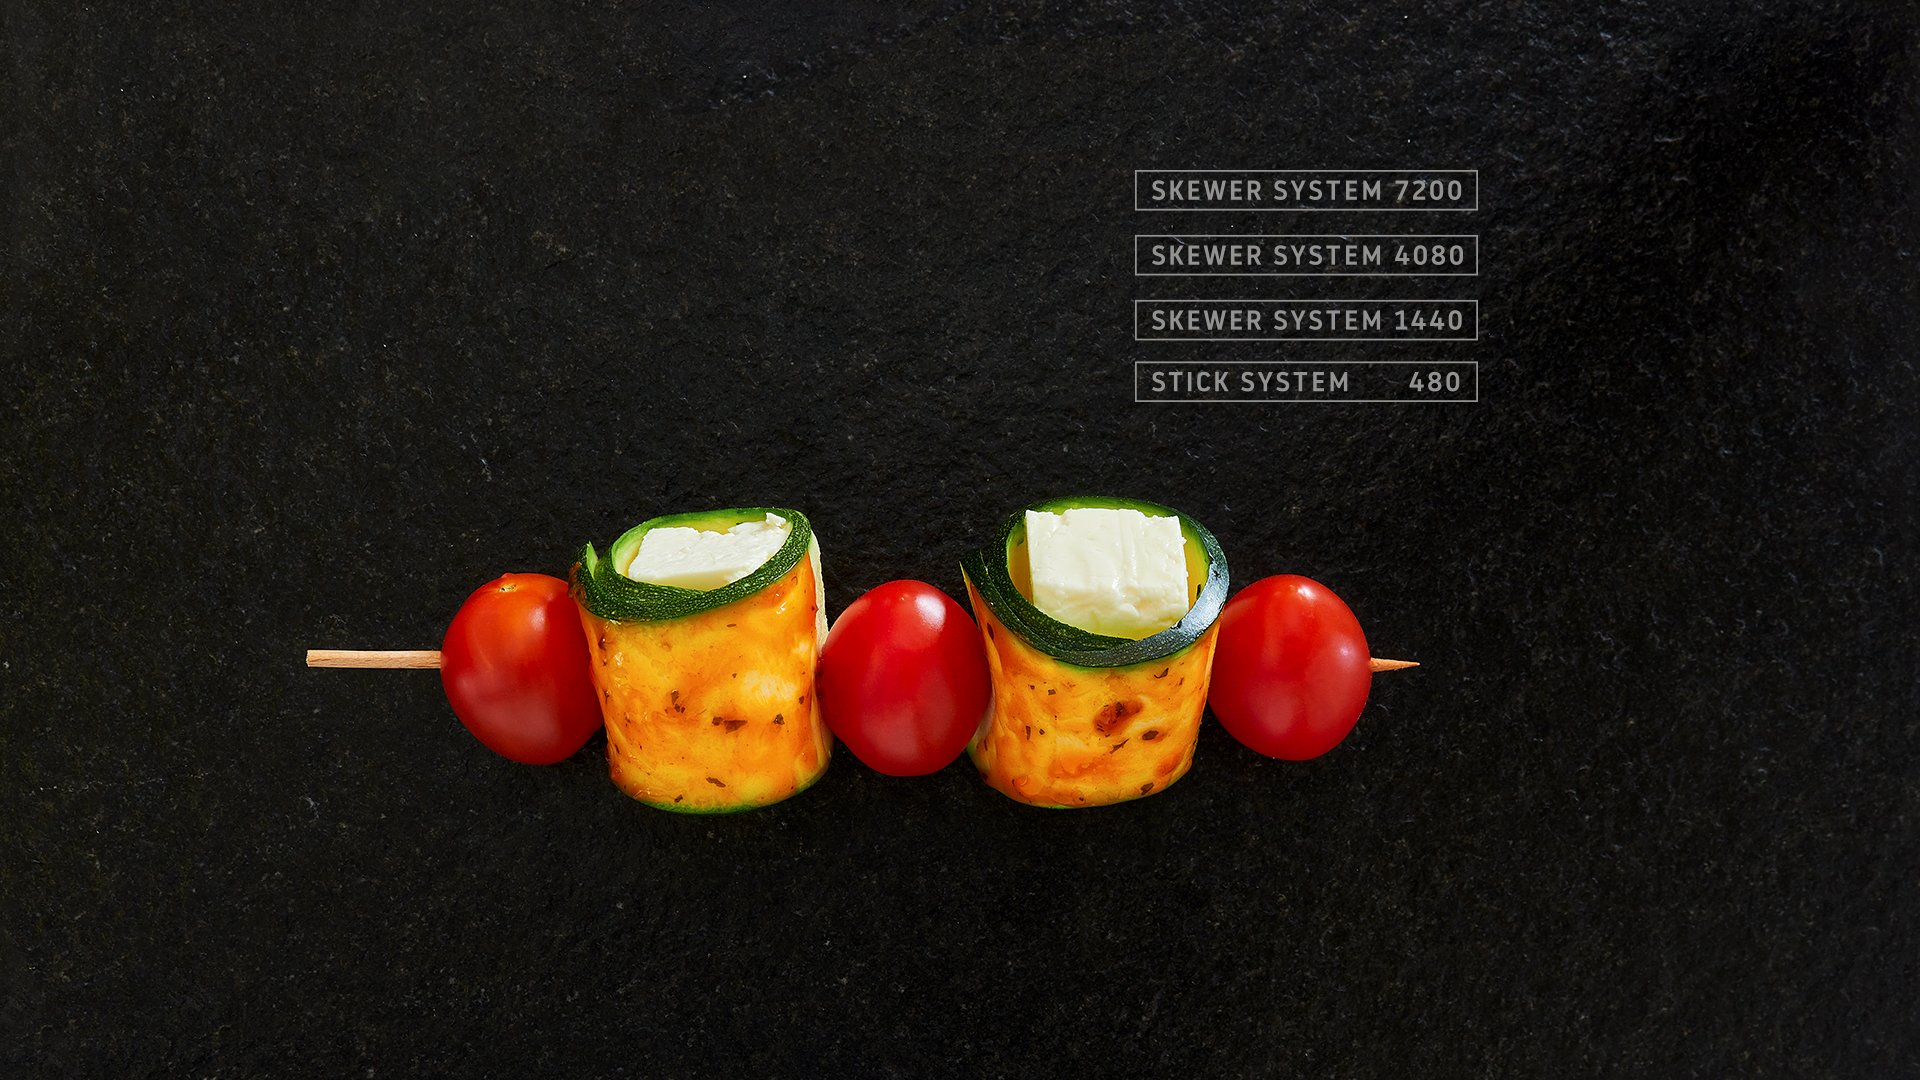 Miveg Skewer Systems · Tomate Gurke Käse Spiess· tomato cucumber cheese skewer